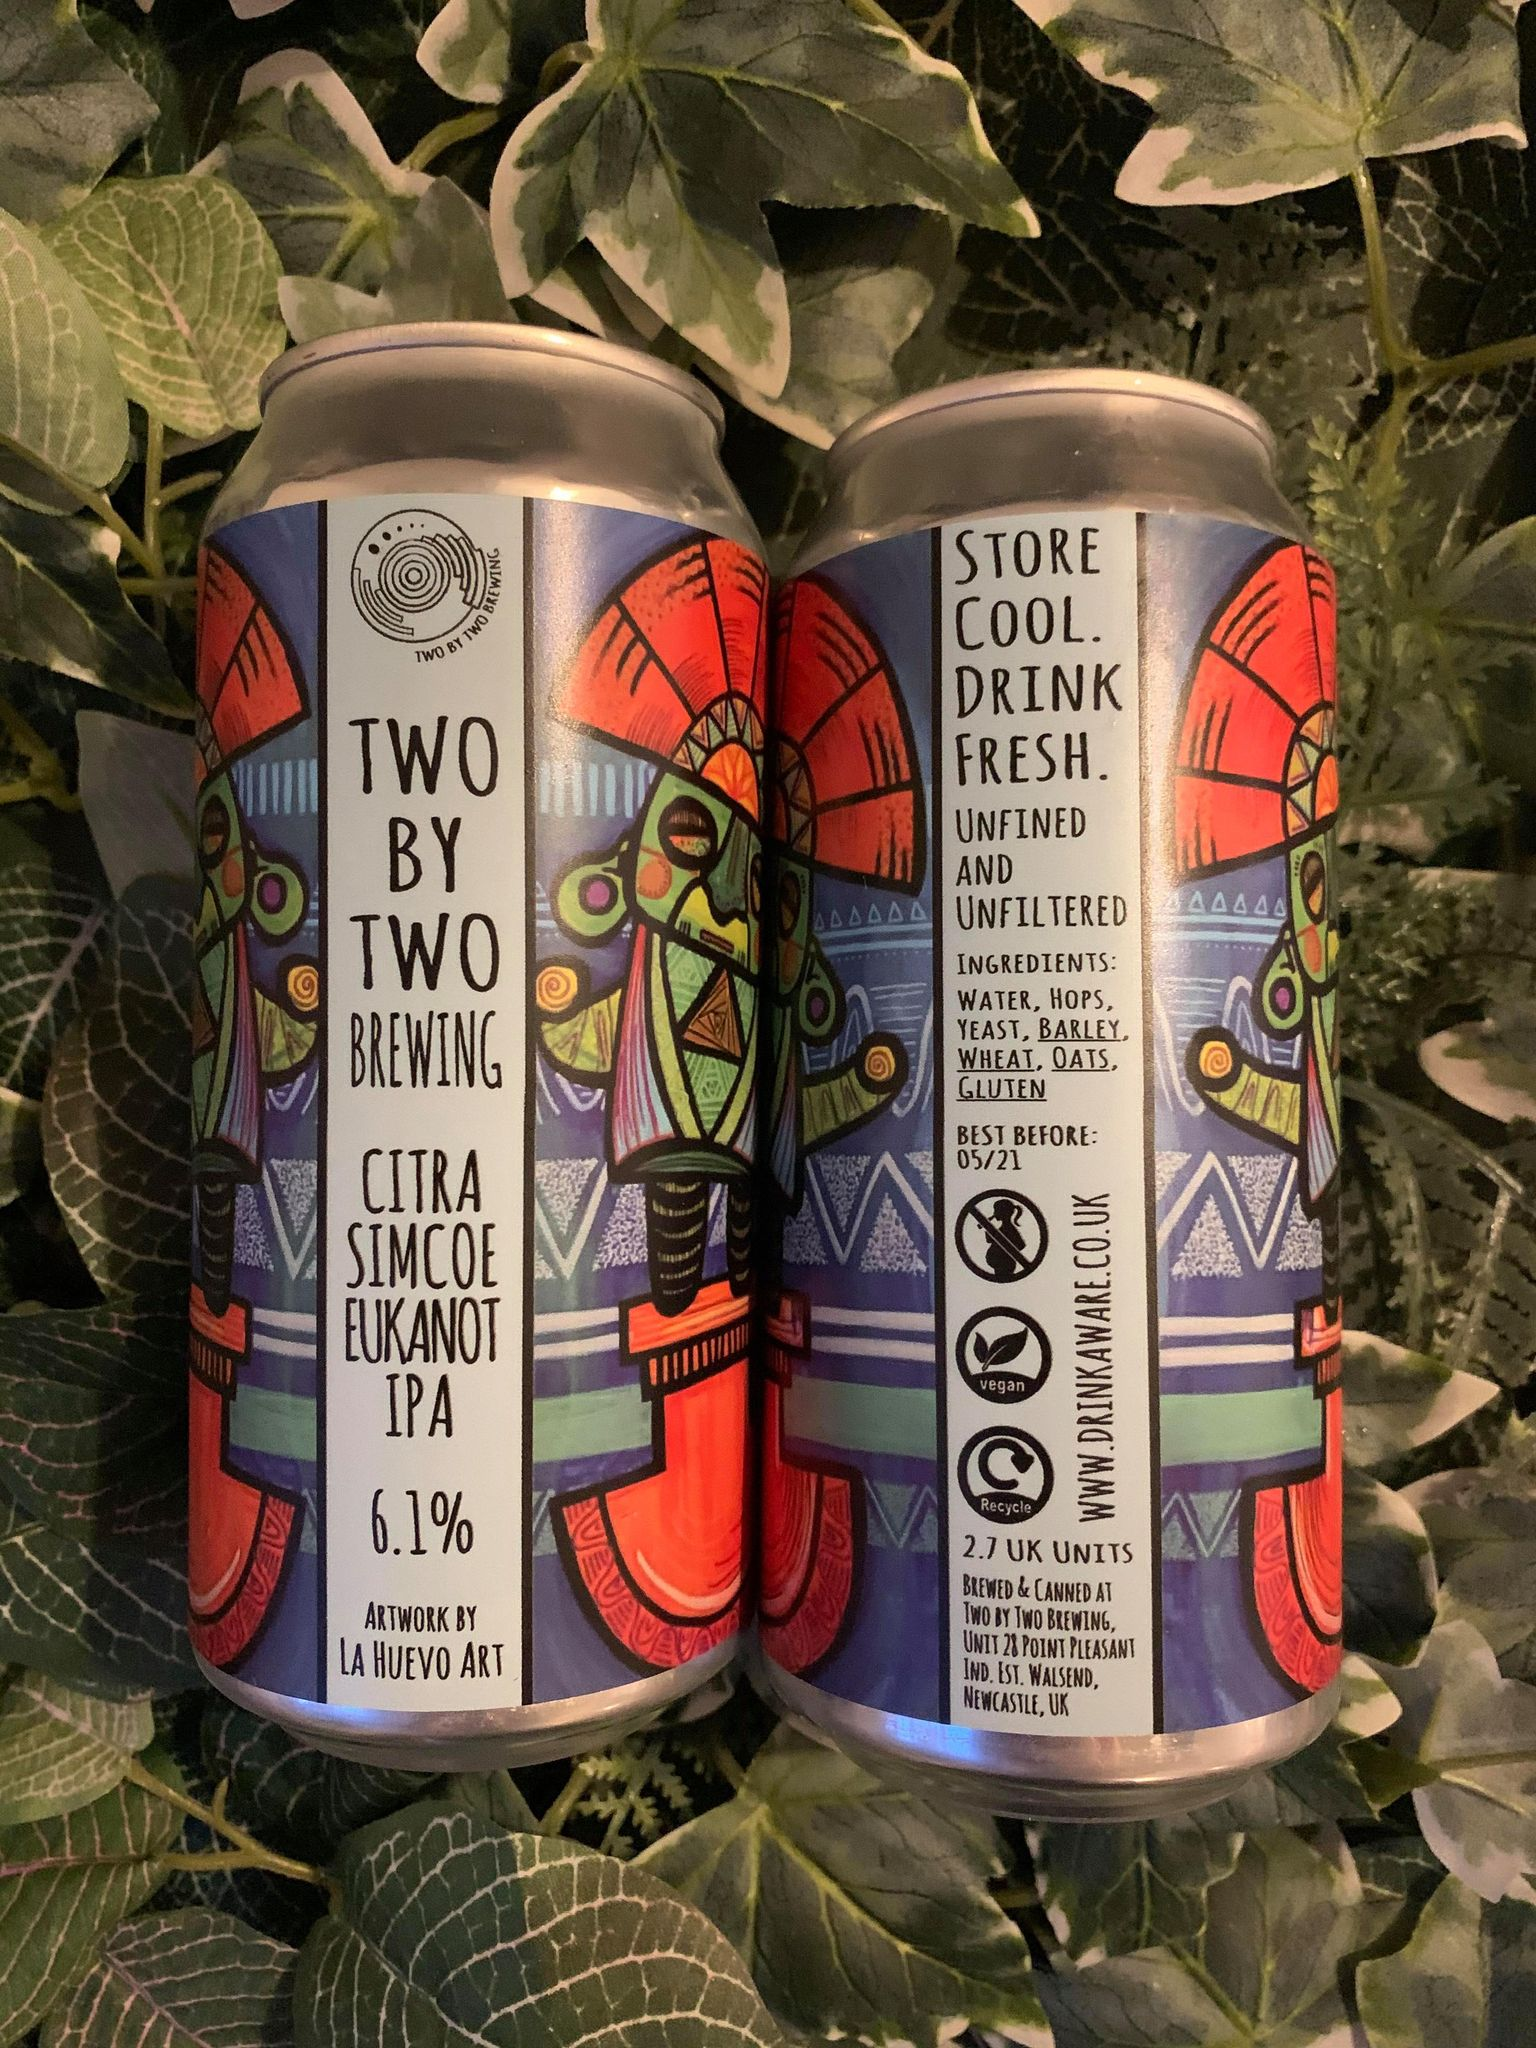 Two By Two - Citra Simcoe IPA 6.1%